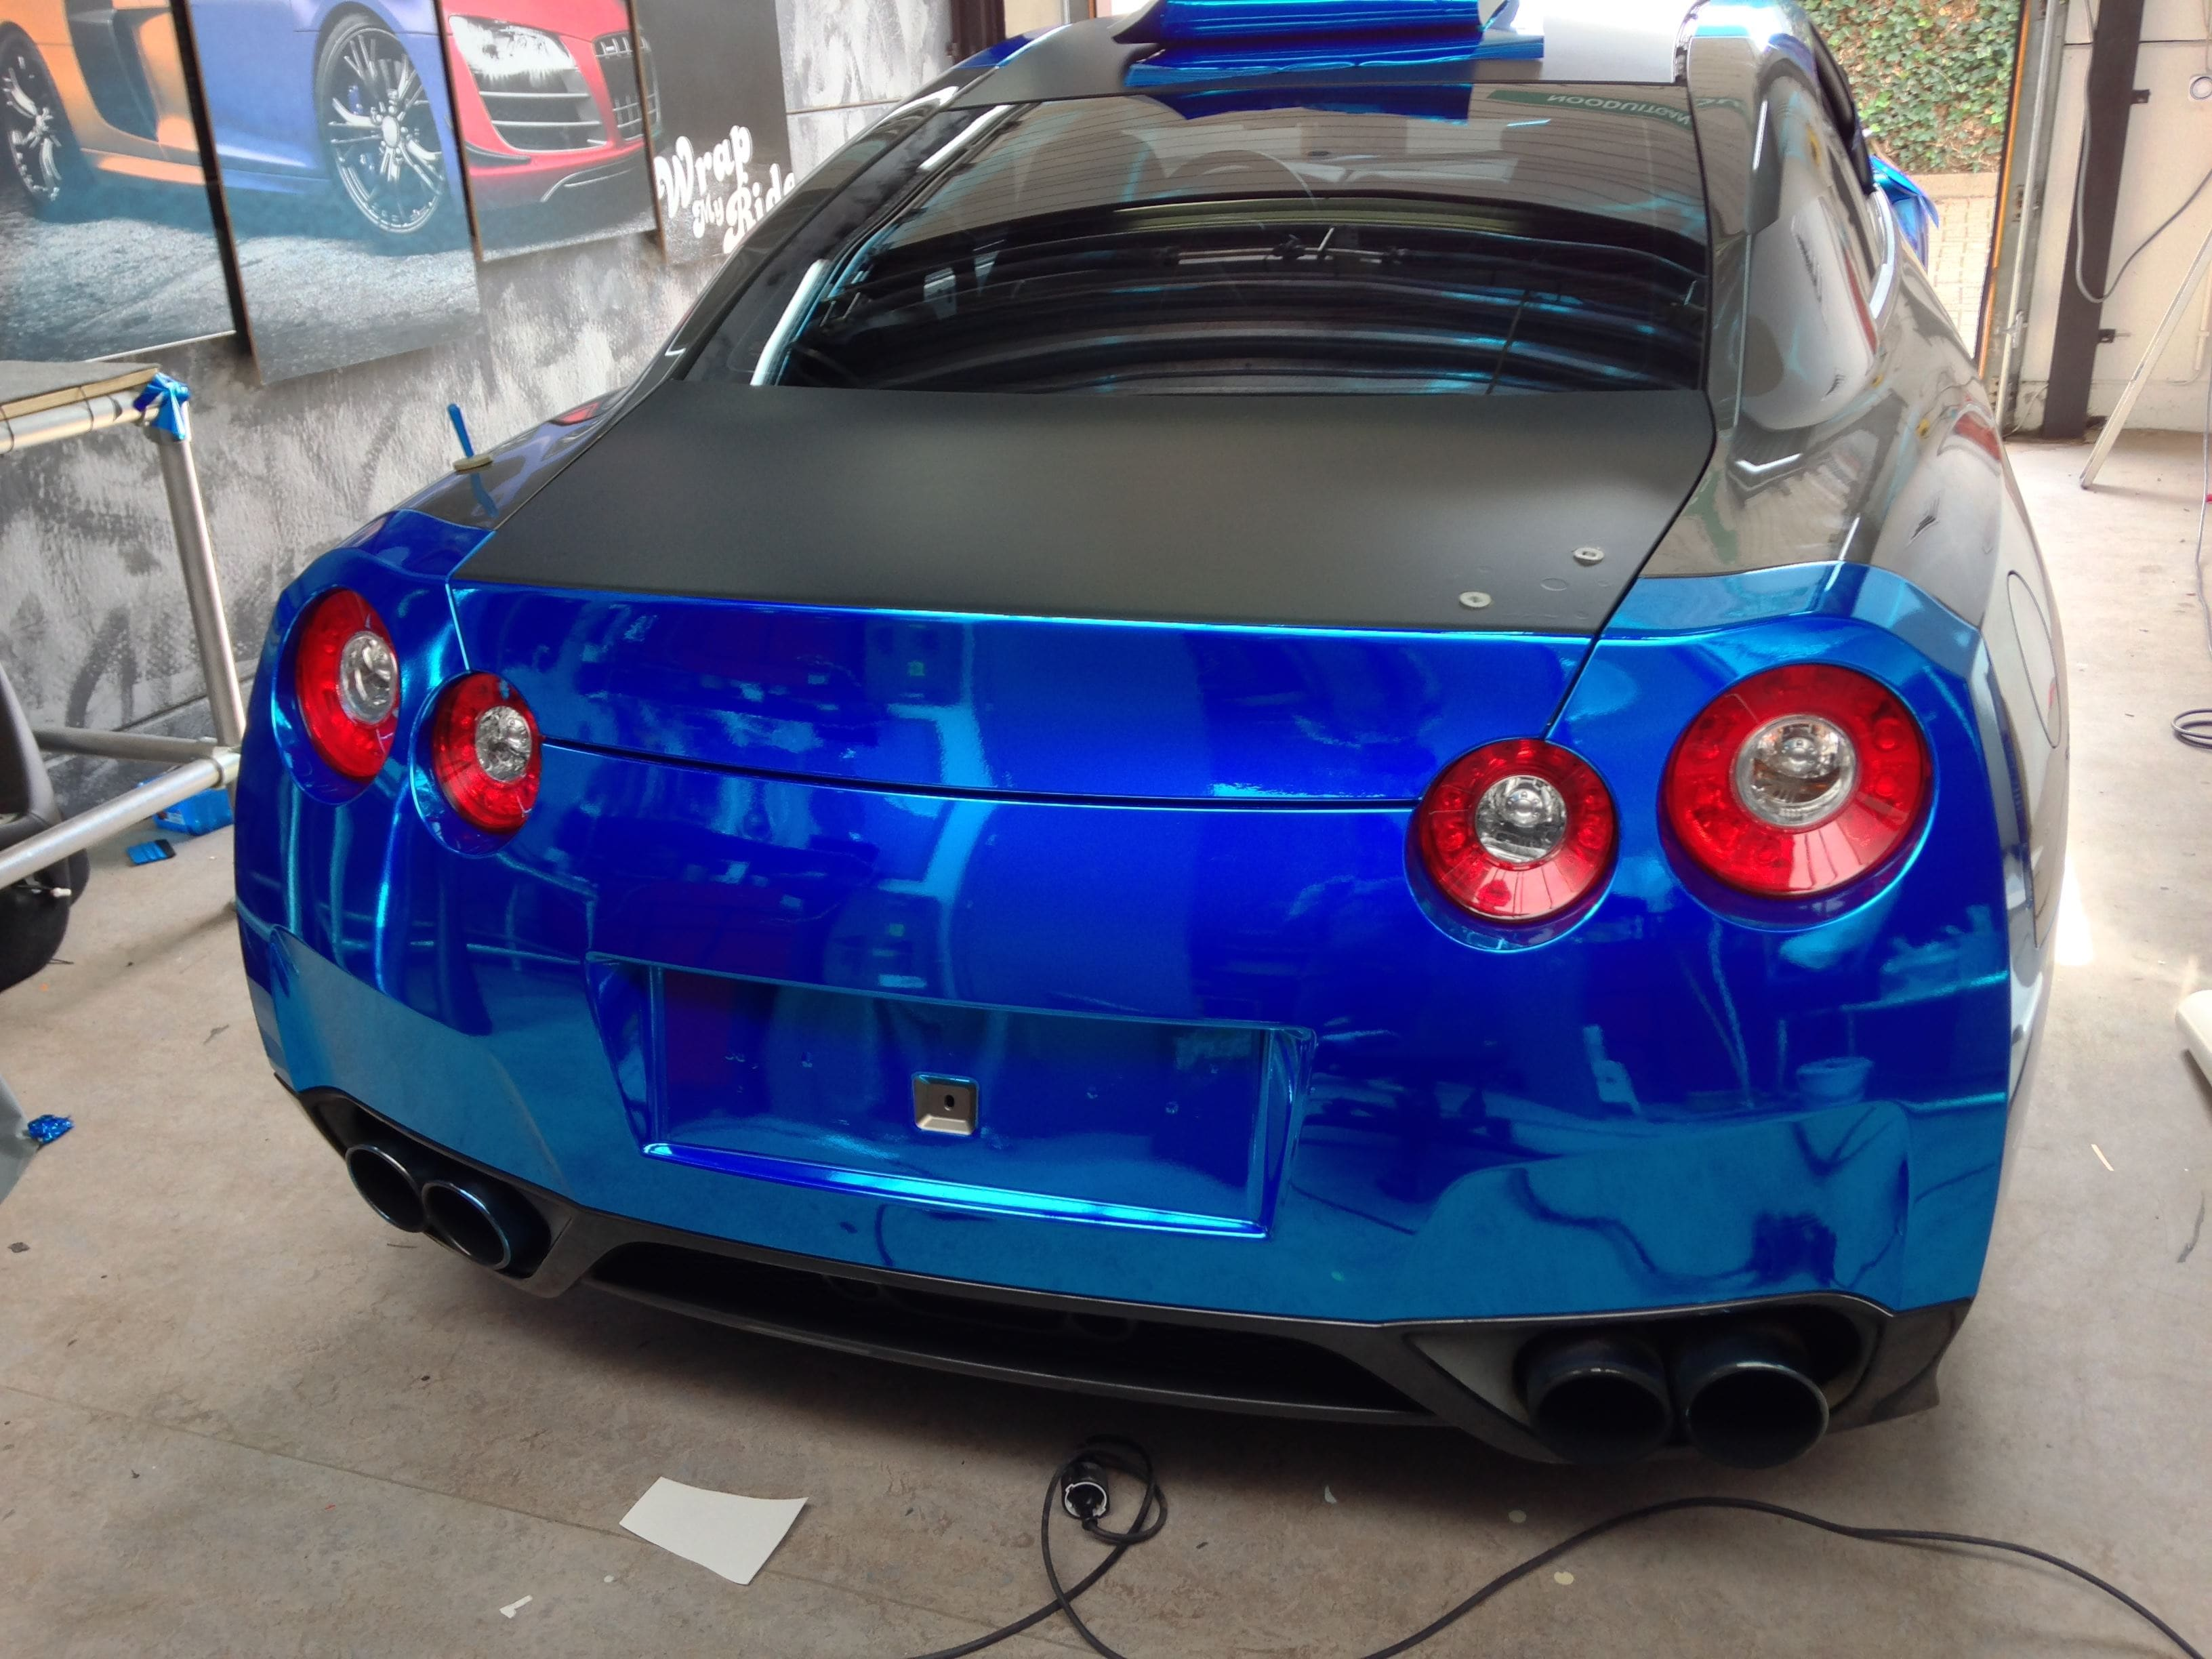 Nissan GT-R met Blue Chrome Wrap, Carwrapping door Wrapmyride.nu Foto-nr:6459, ©2020